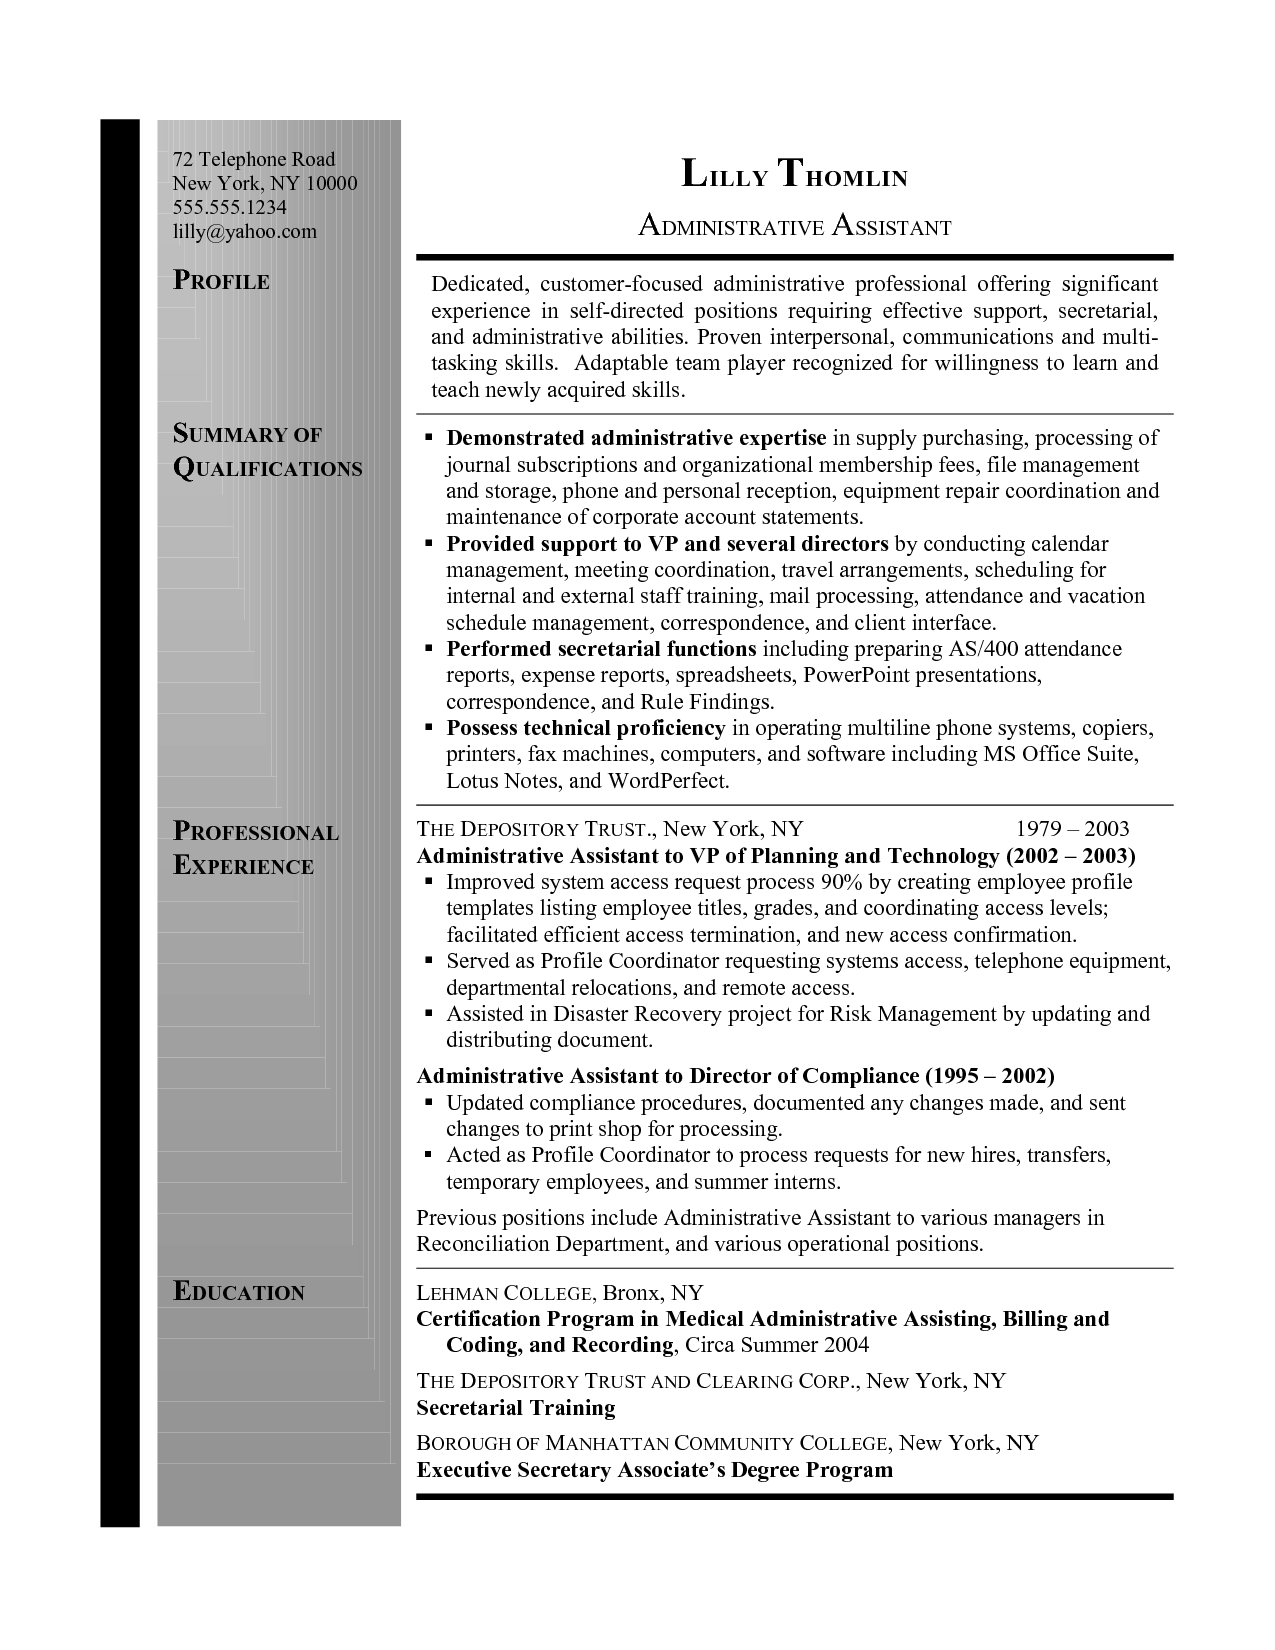 Resume Summary Administrative Assistant Resume examples